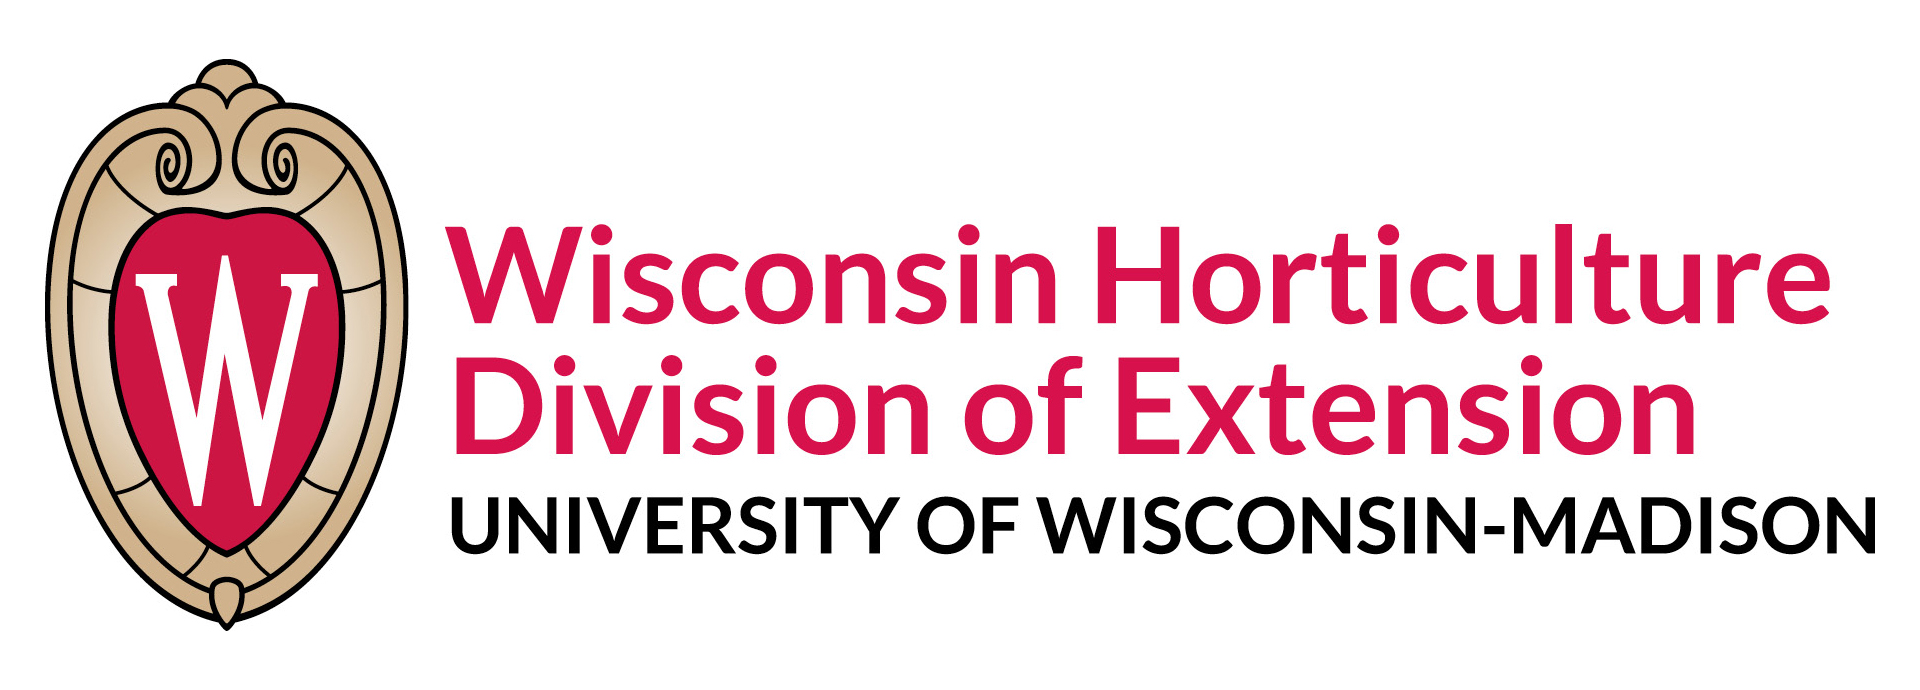 Wisconsin Horniculture Division of Extension - UW